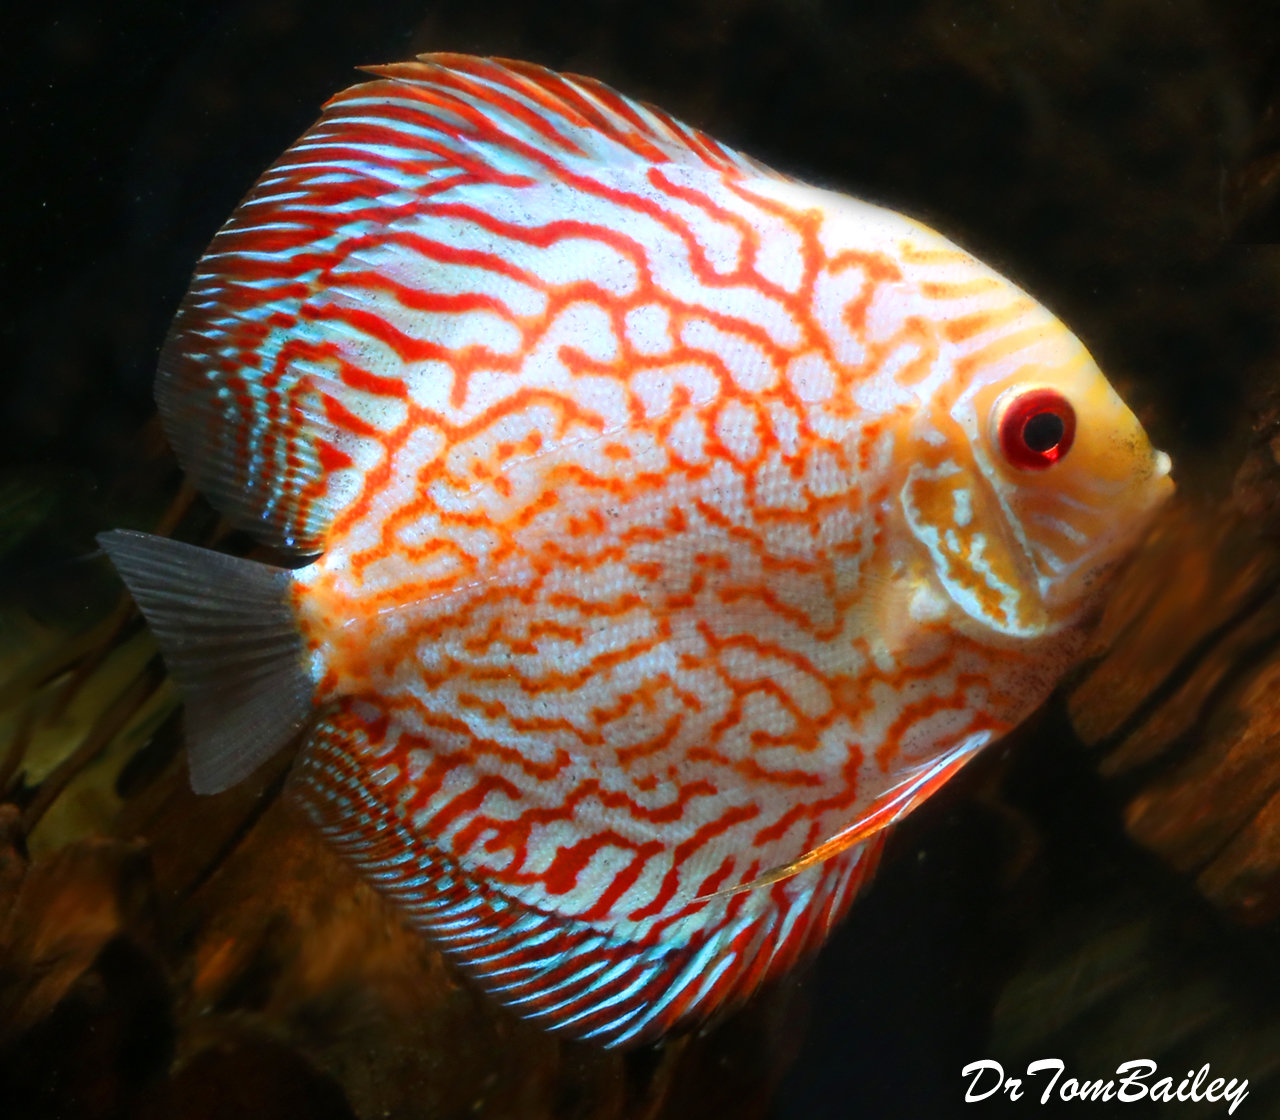 "Premium Red Pigeon Blood Discus, 3.5"" to 4"" long"